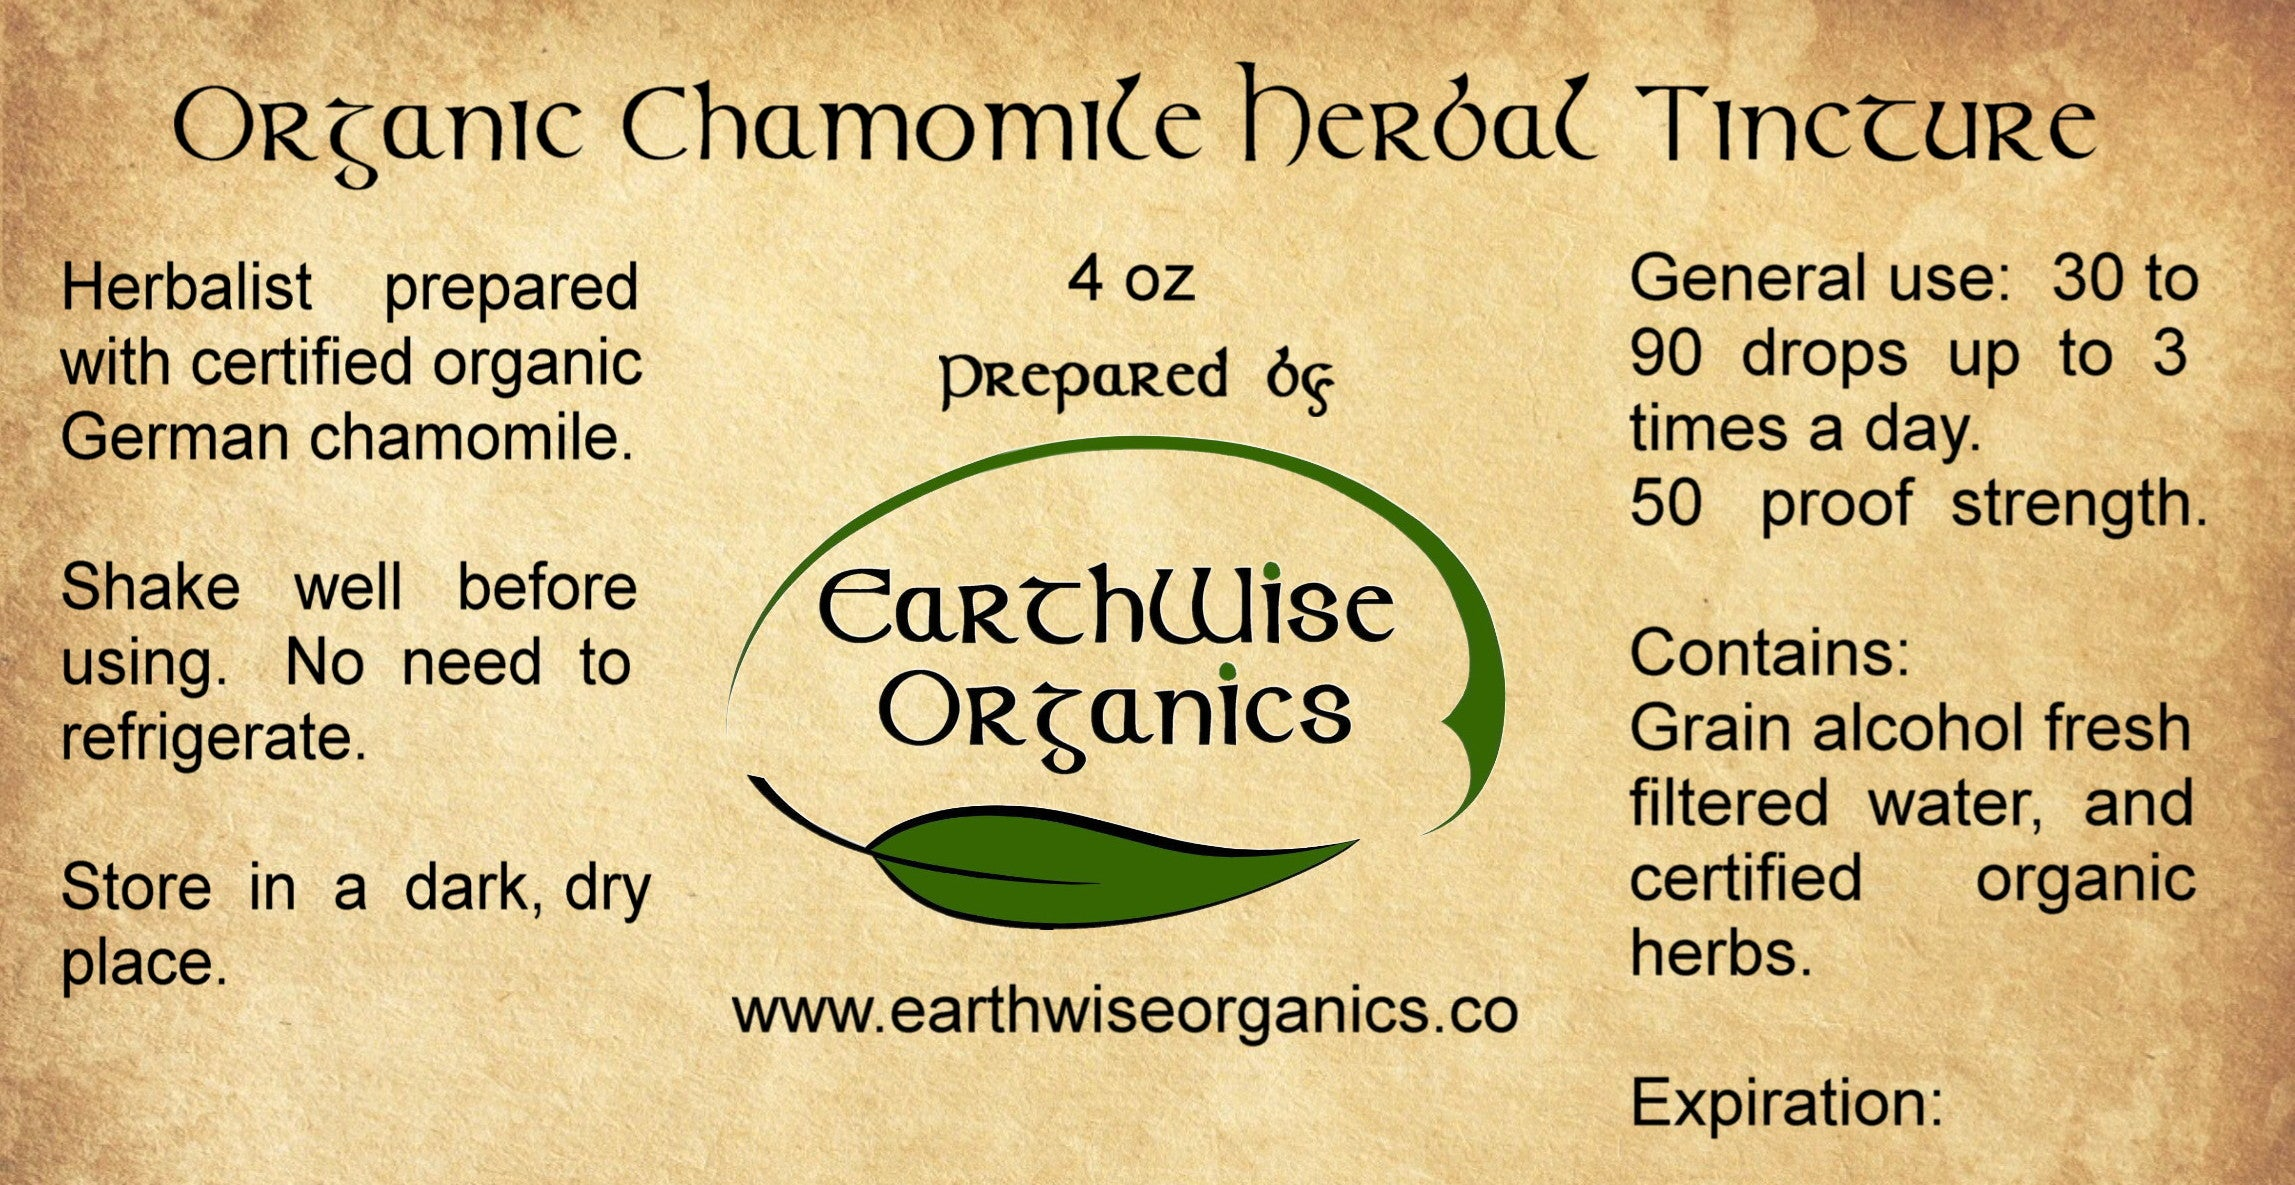 chamomile organic herbal tincture label